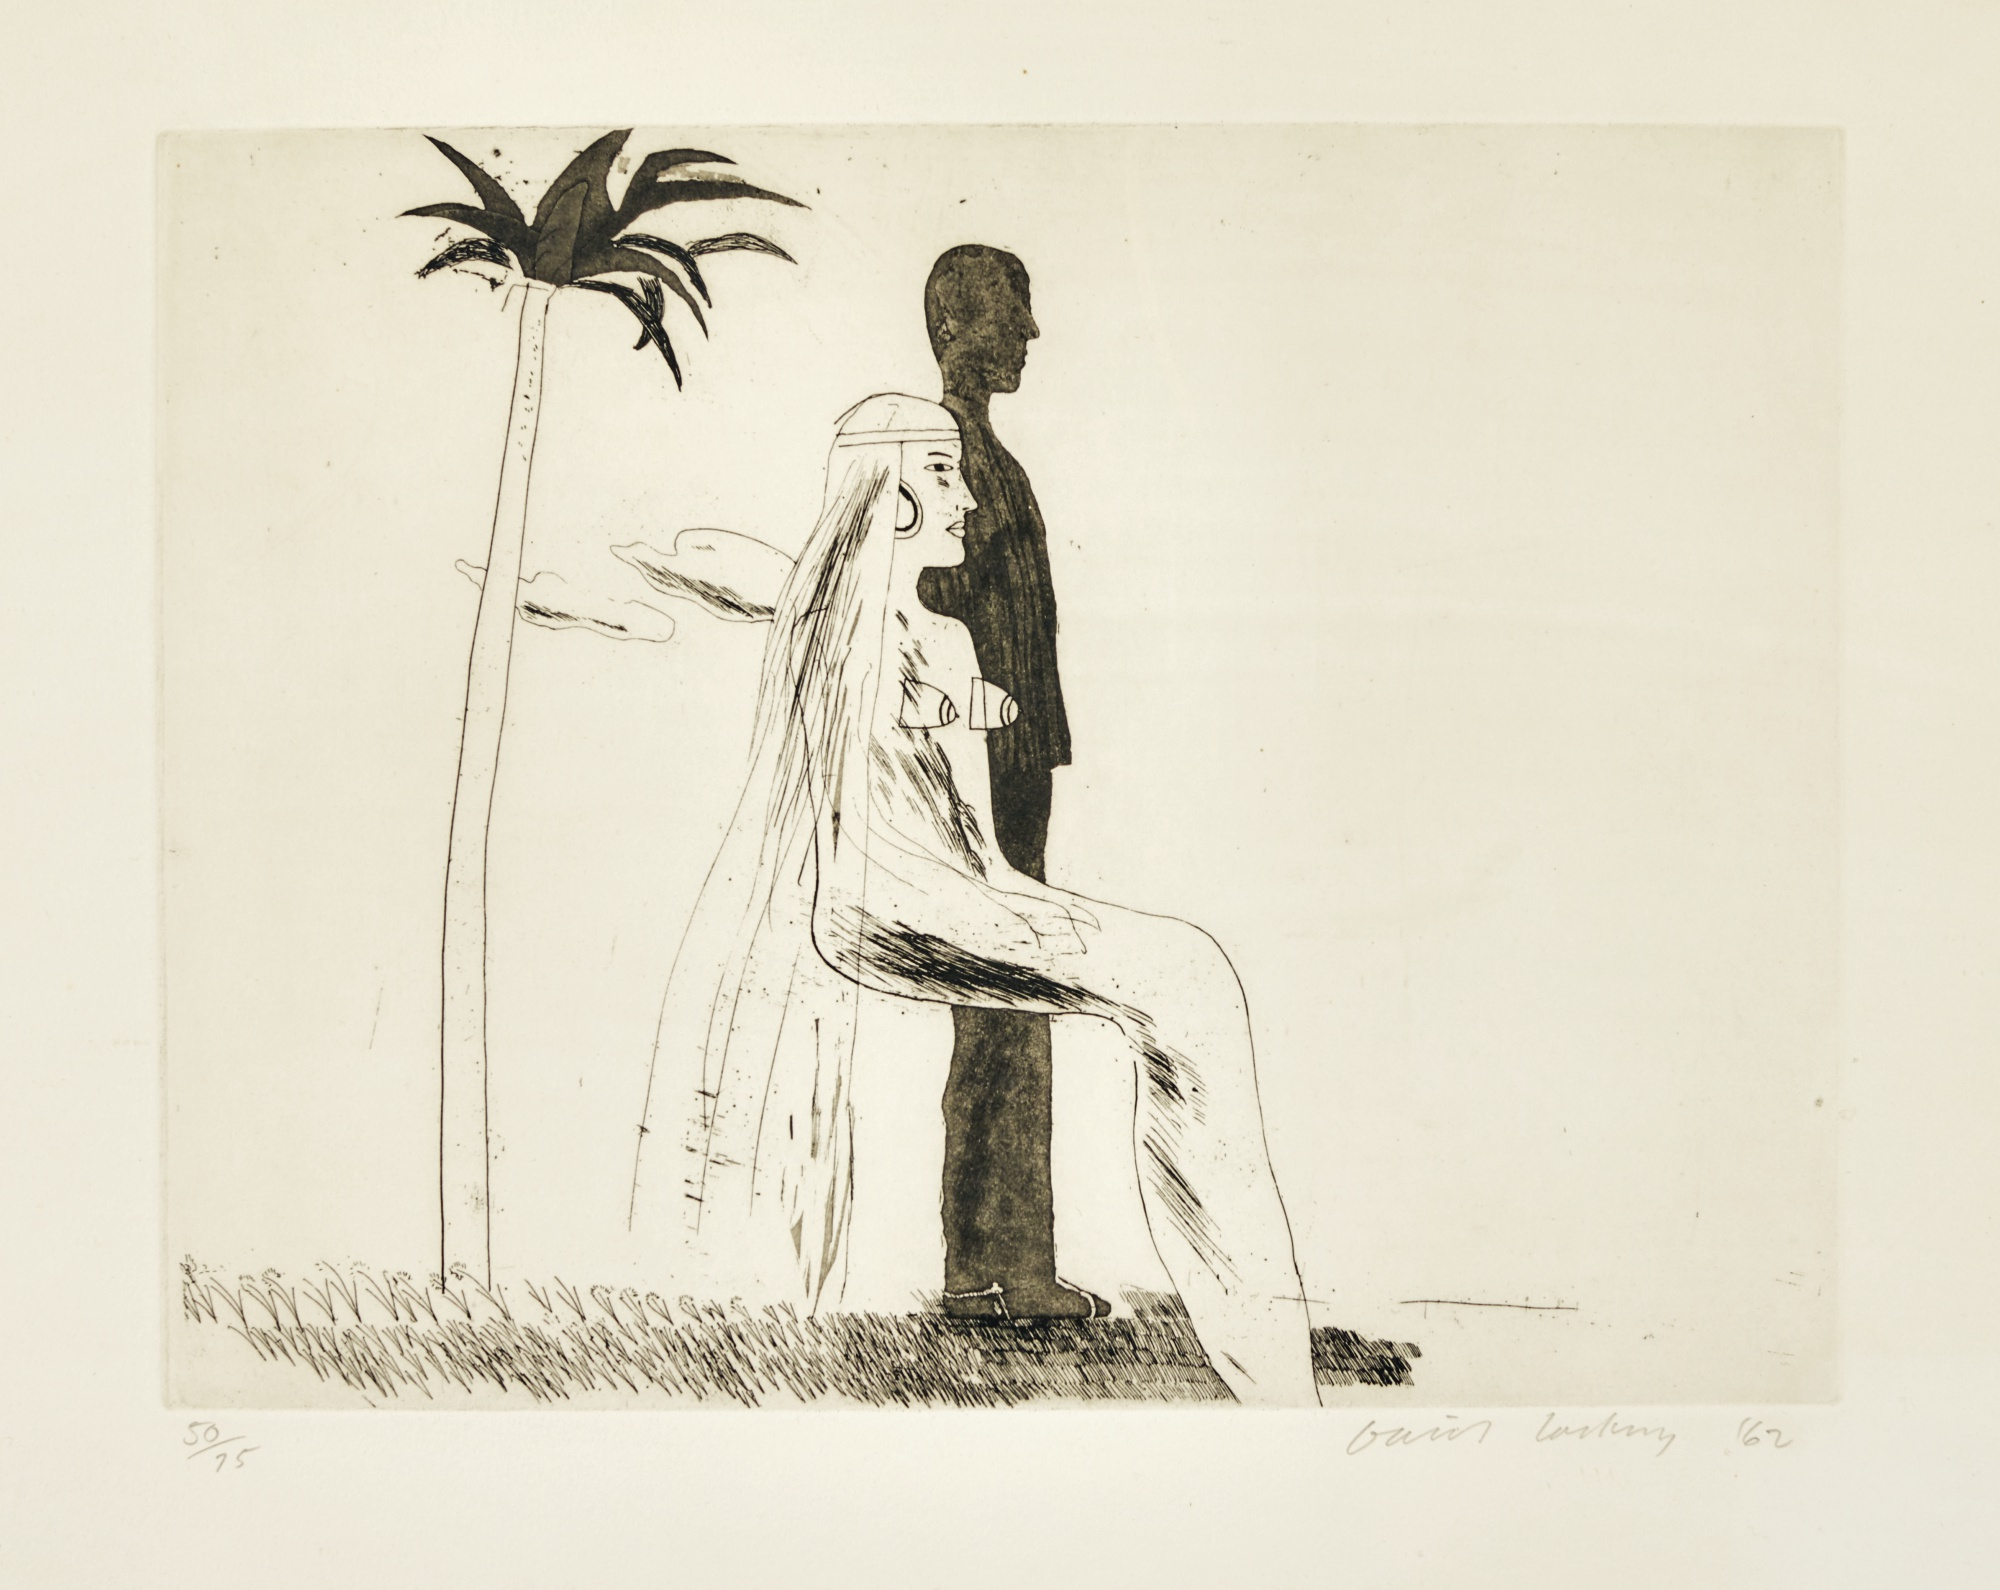 David Hockney-The Marriage (Scottish Arts Council14; Museum Of Contemporary ArtTokyo 30)-1962